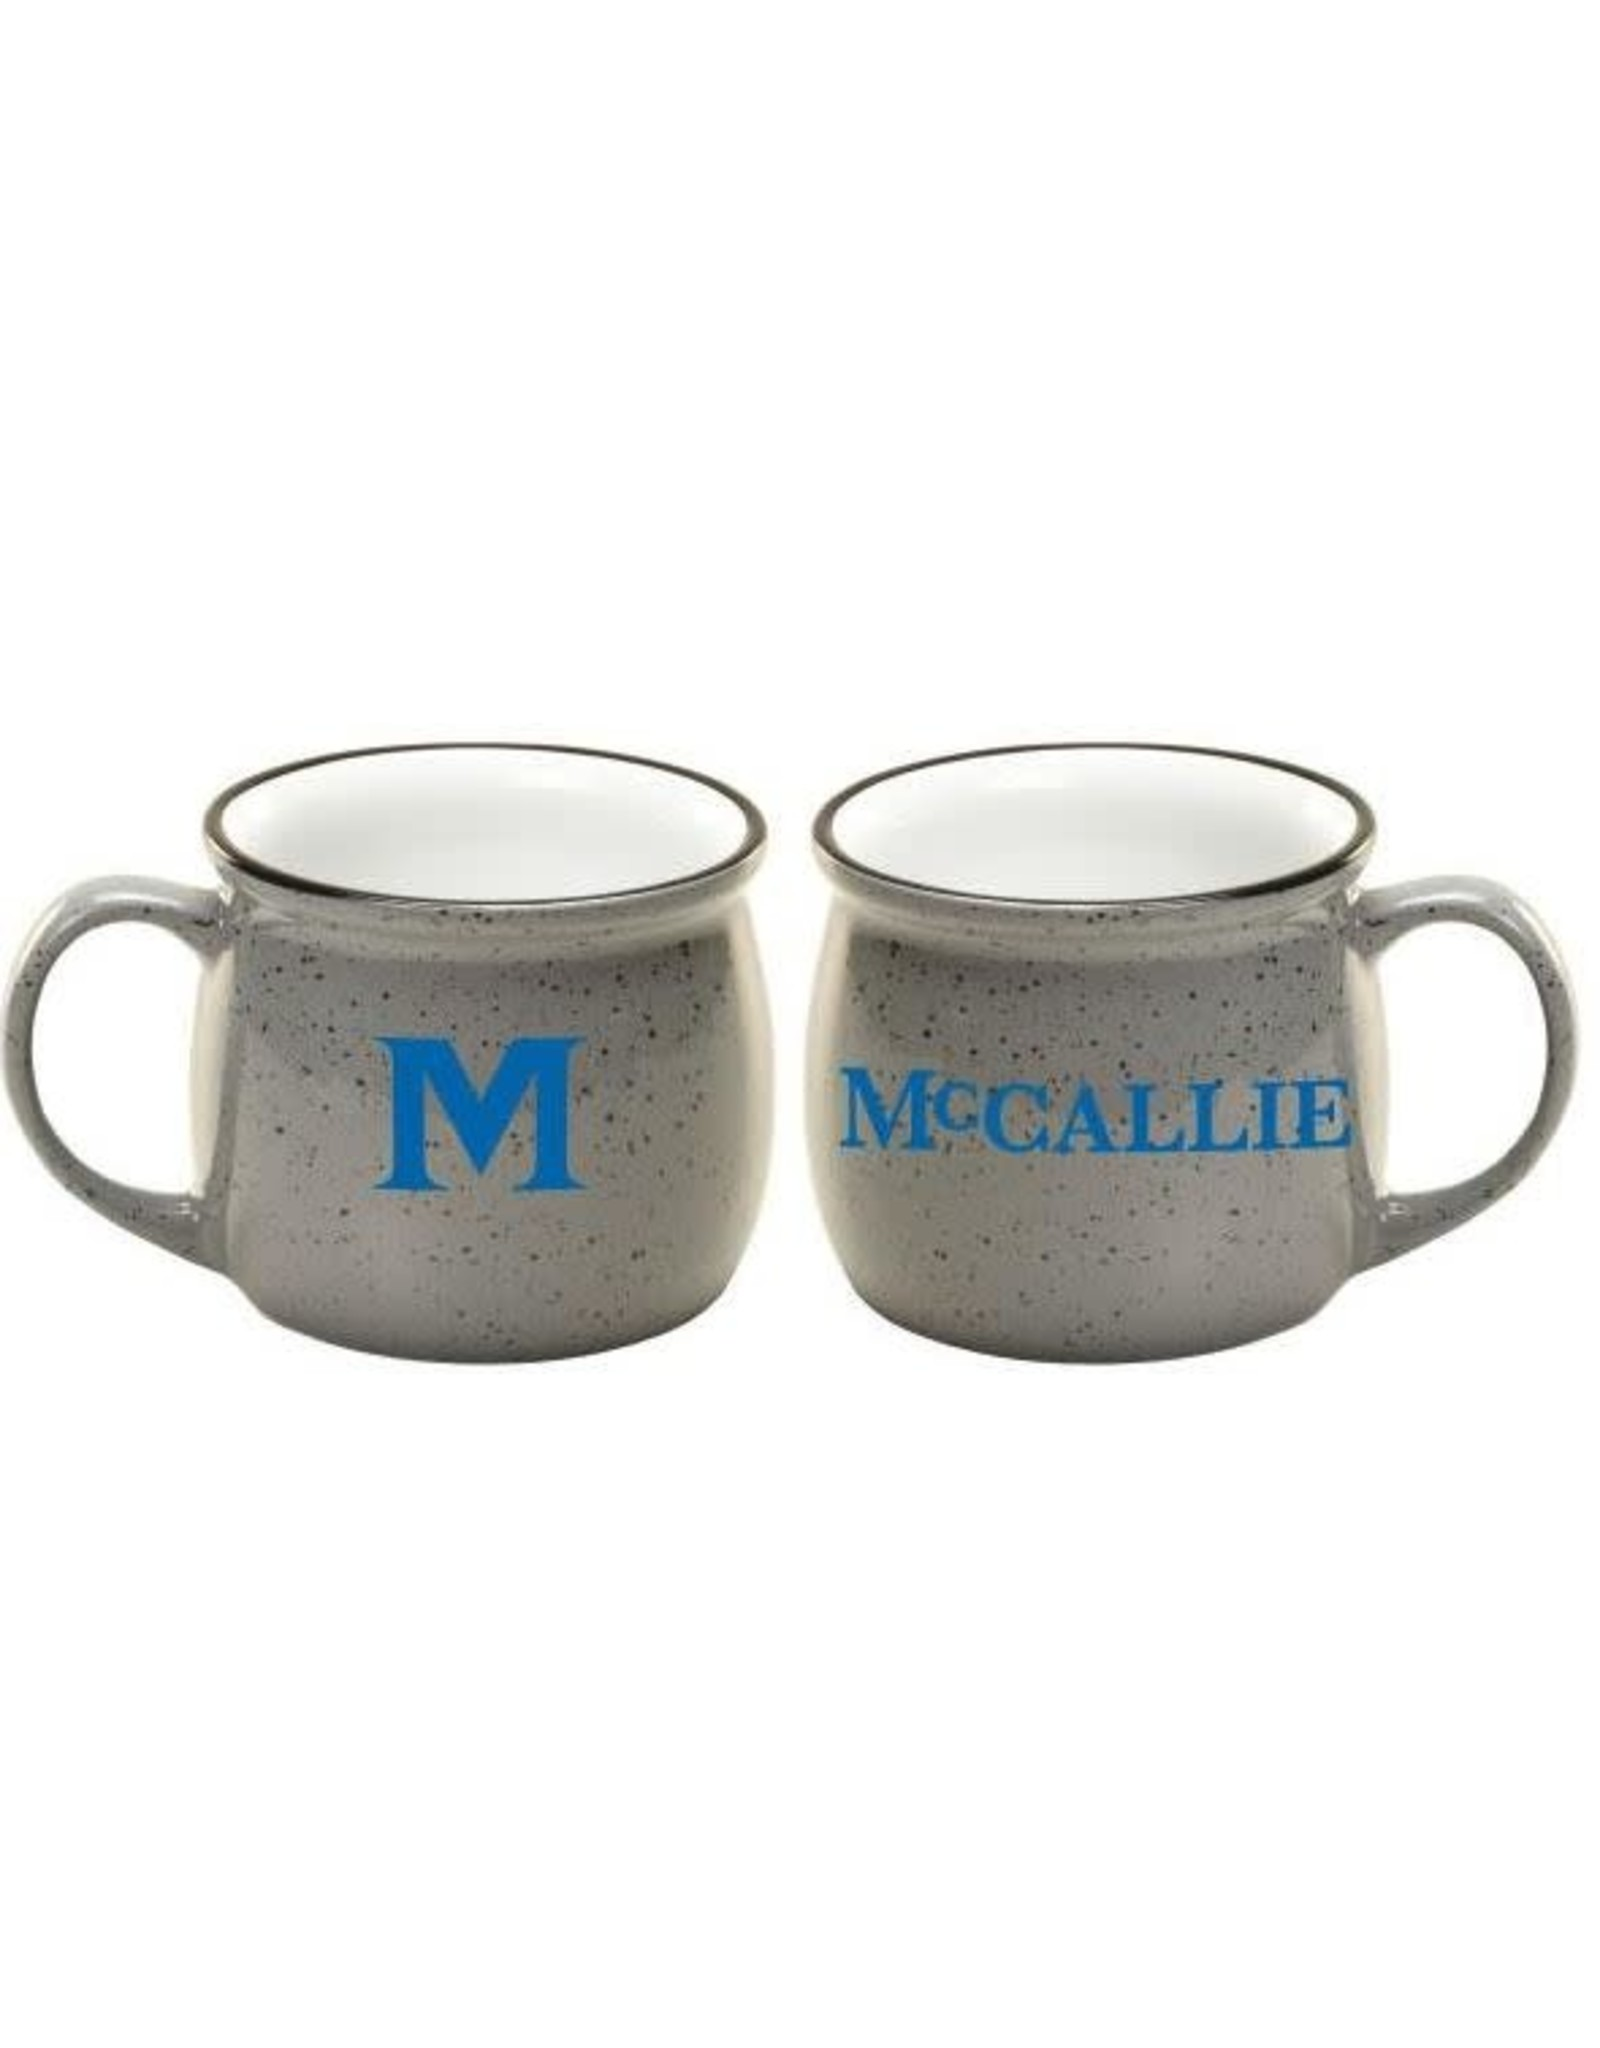 COLONIAL SPECKLED MUG- Gray